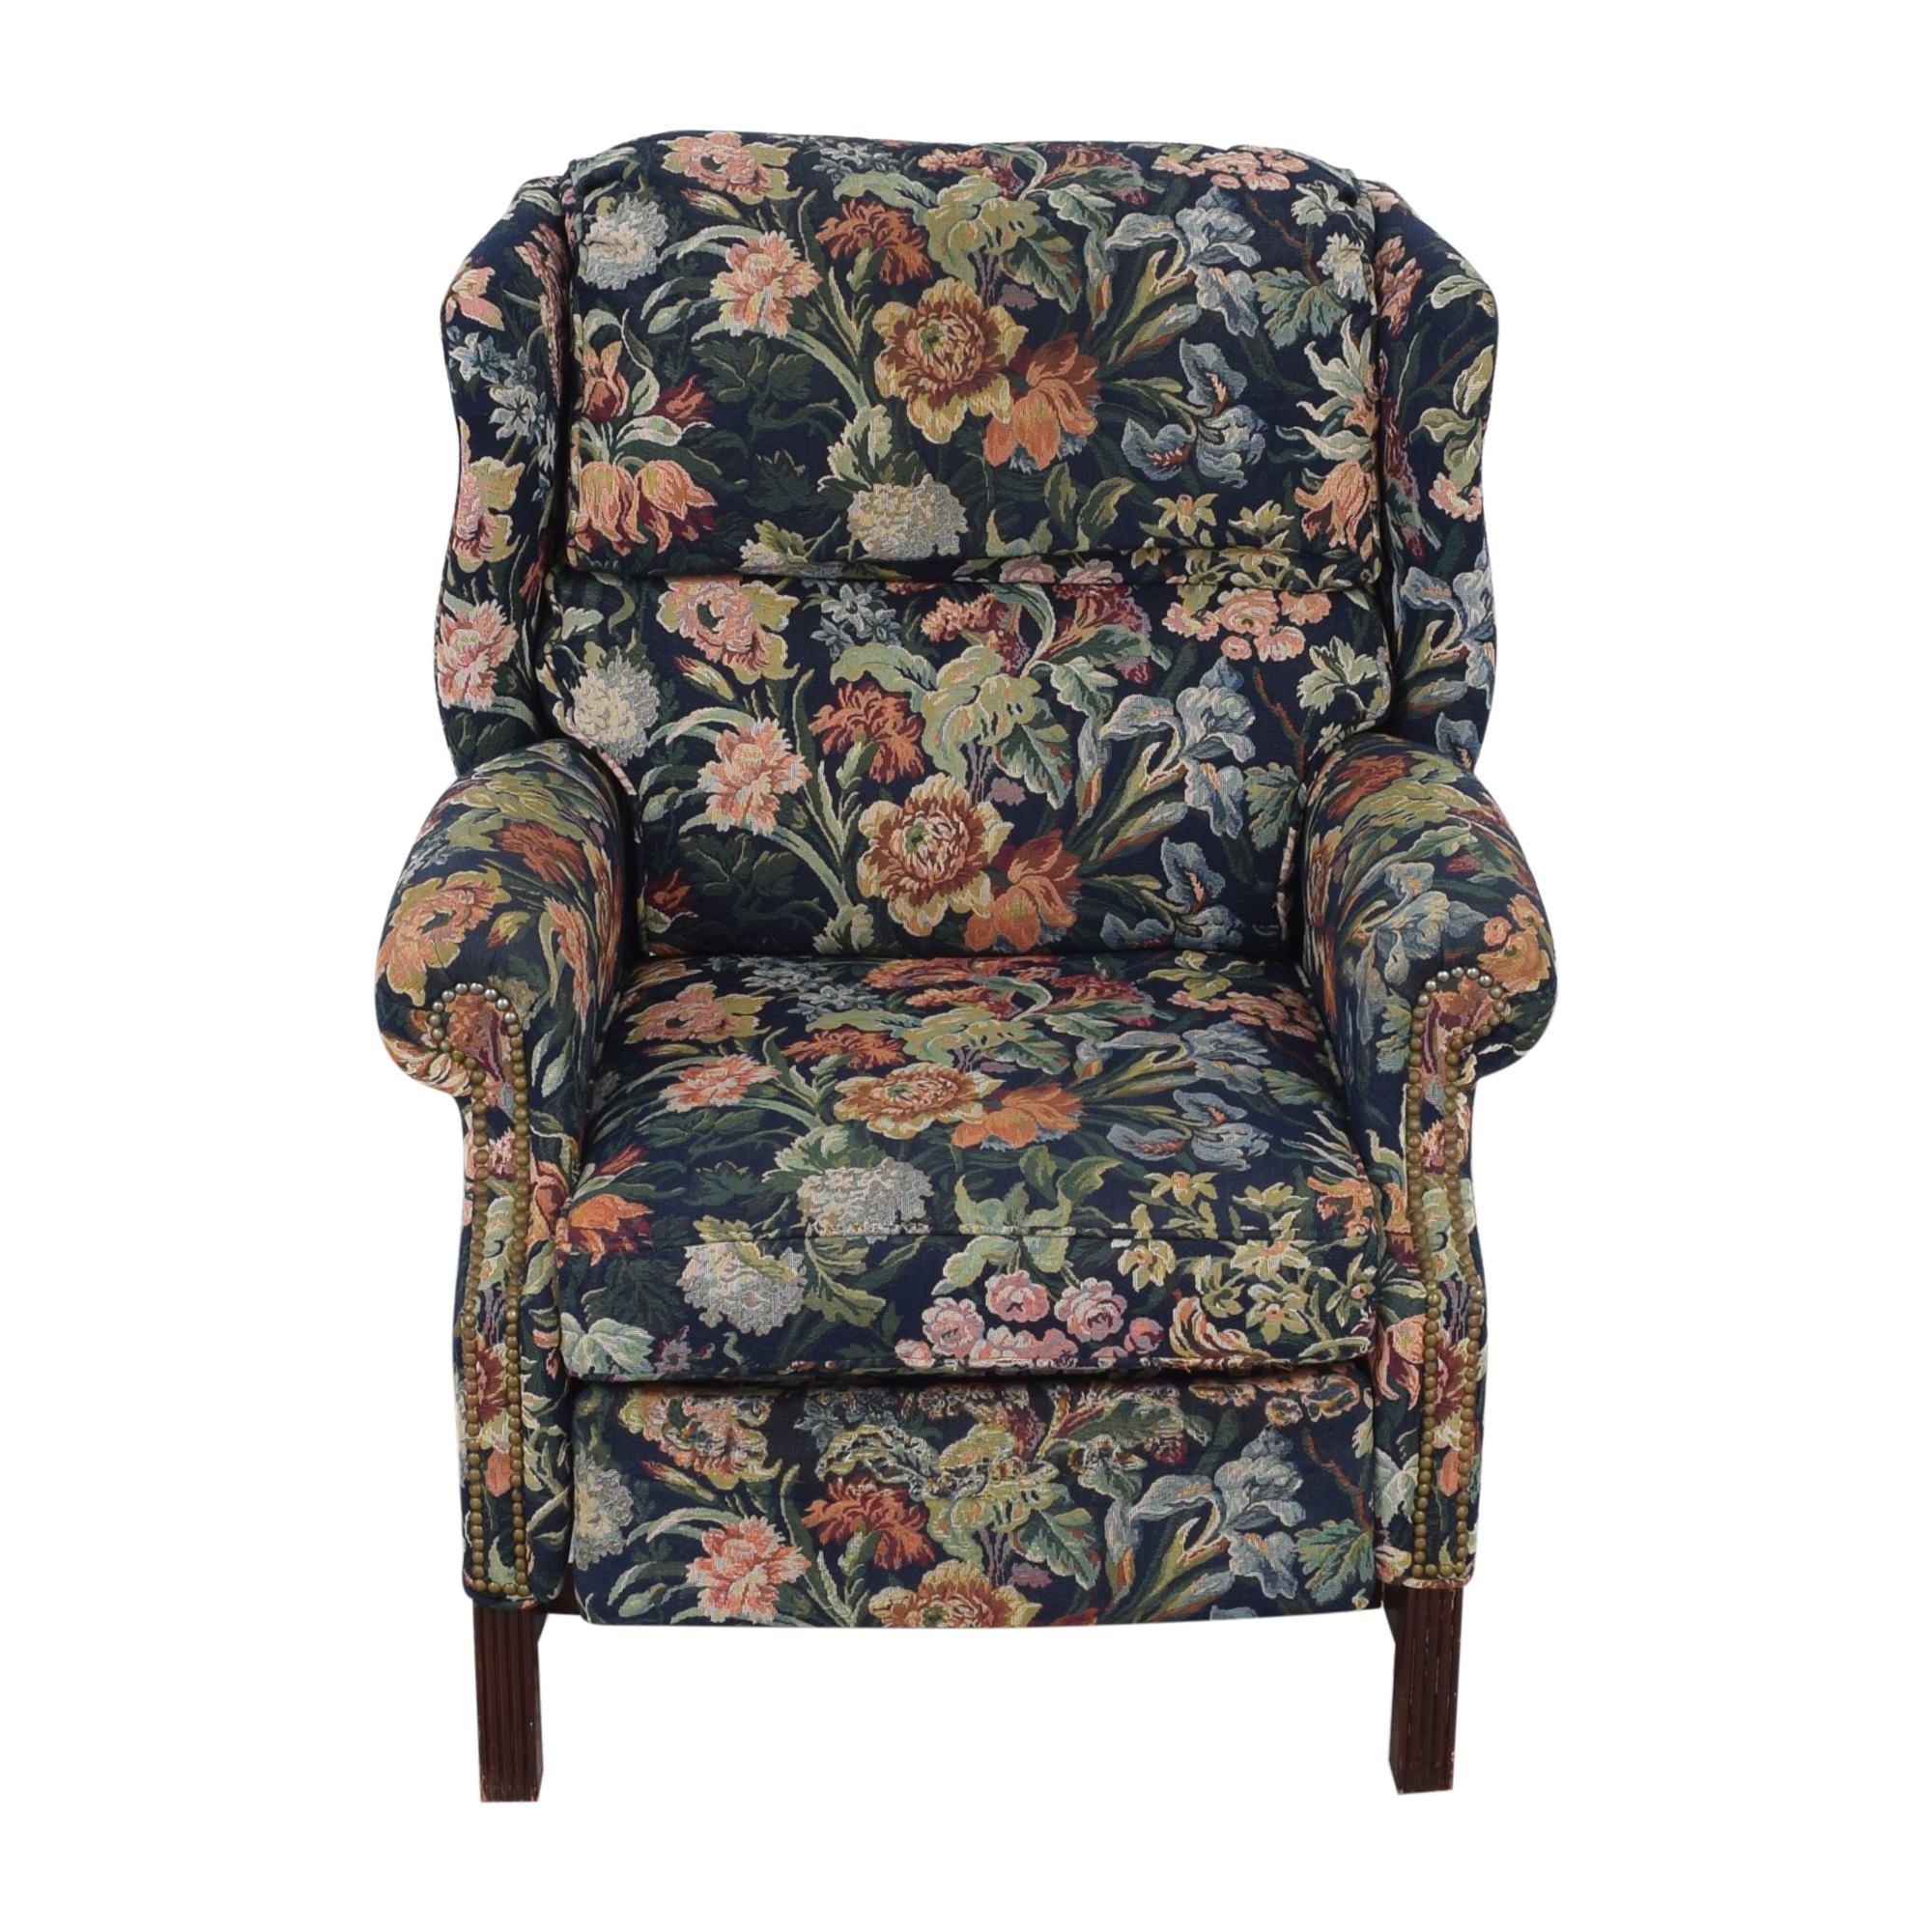 Thomasville Thomasville Wing Recliner Chair for sale